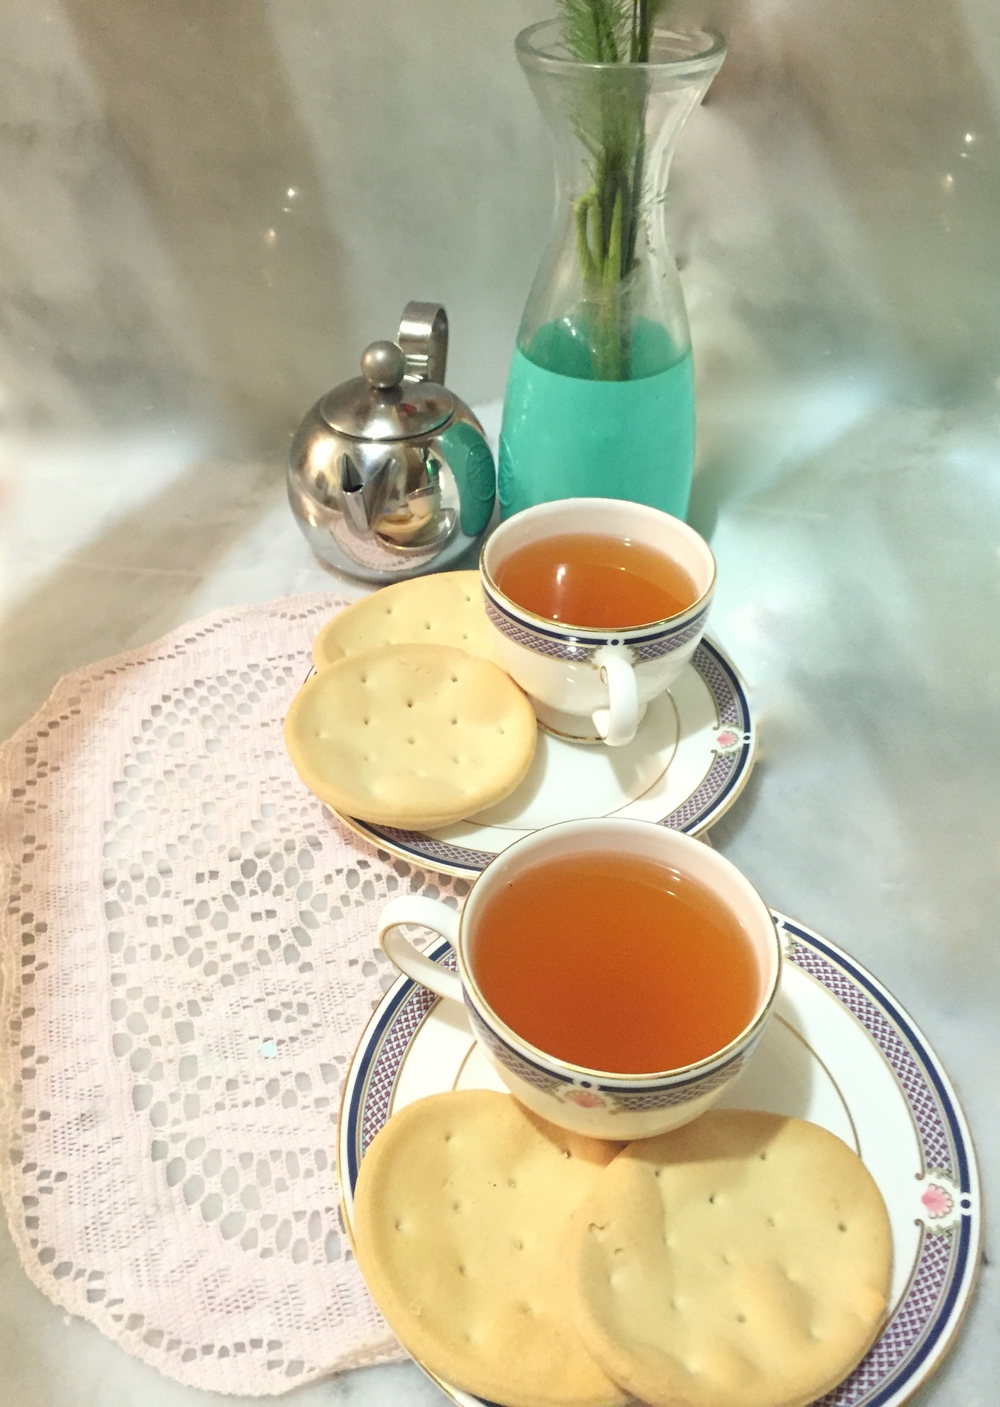 Comfort tea served with biscuits or cookies